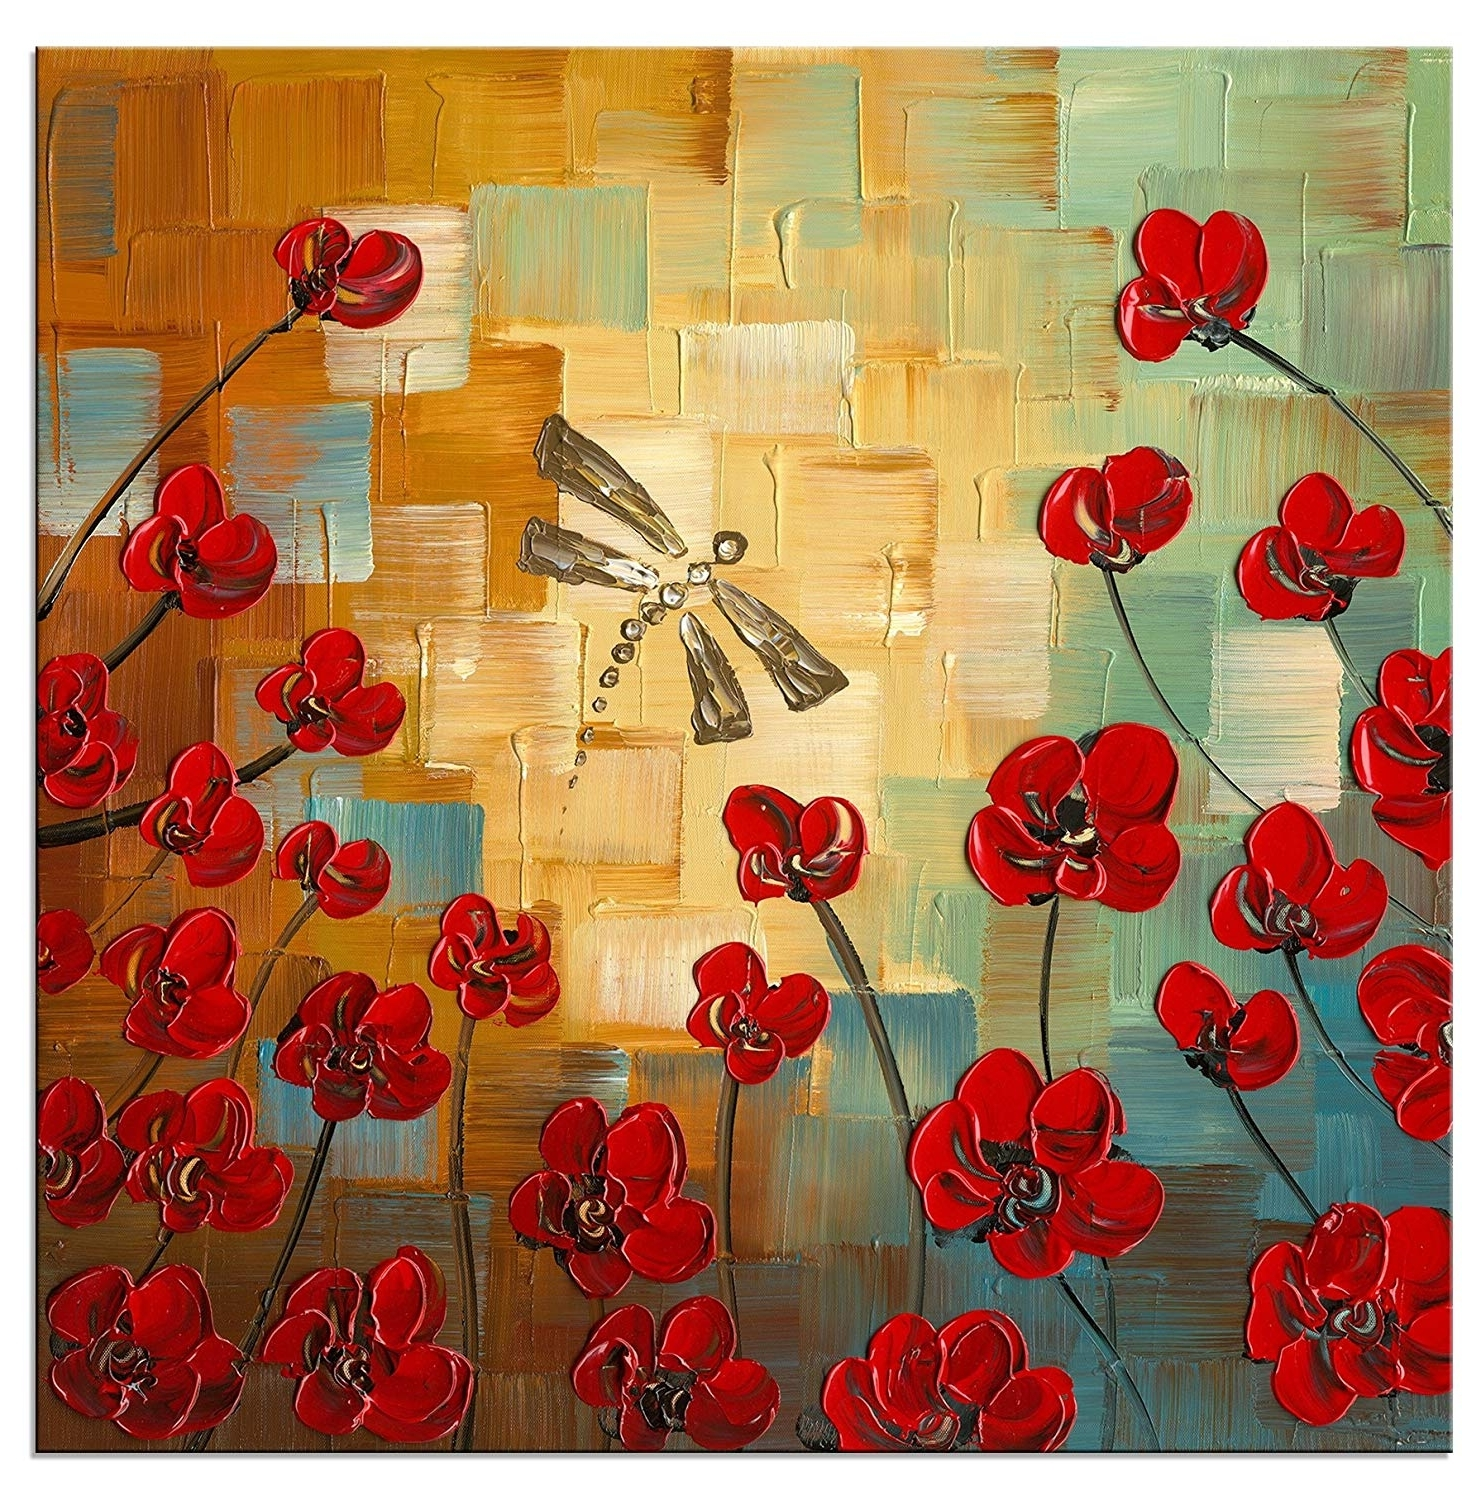 [%Amazon: Wieco Art Dragonfly Modern Flowers Artwork 100% Hand Throughout Famous Wall Art Paintings|Wall Art Paintings Inside Most Up To Date Amazon: Wieco Art Dragonfly Modern Flowers Artwork 100% Hand|Favorite Wall Art Paintings Inside Amazon: Wieco Art Dragonfly Modern Flowers Artwork 100% Hand|Most Popular Amazon: Wieco Art Dragonfly Modern Flowers Artwork 100% Hand Within Wall Art Paintings%] (View 2 of 20)